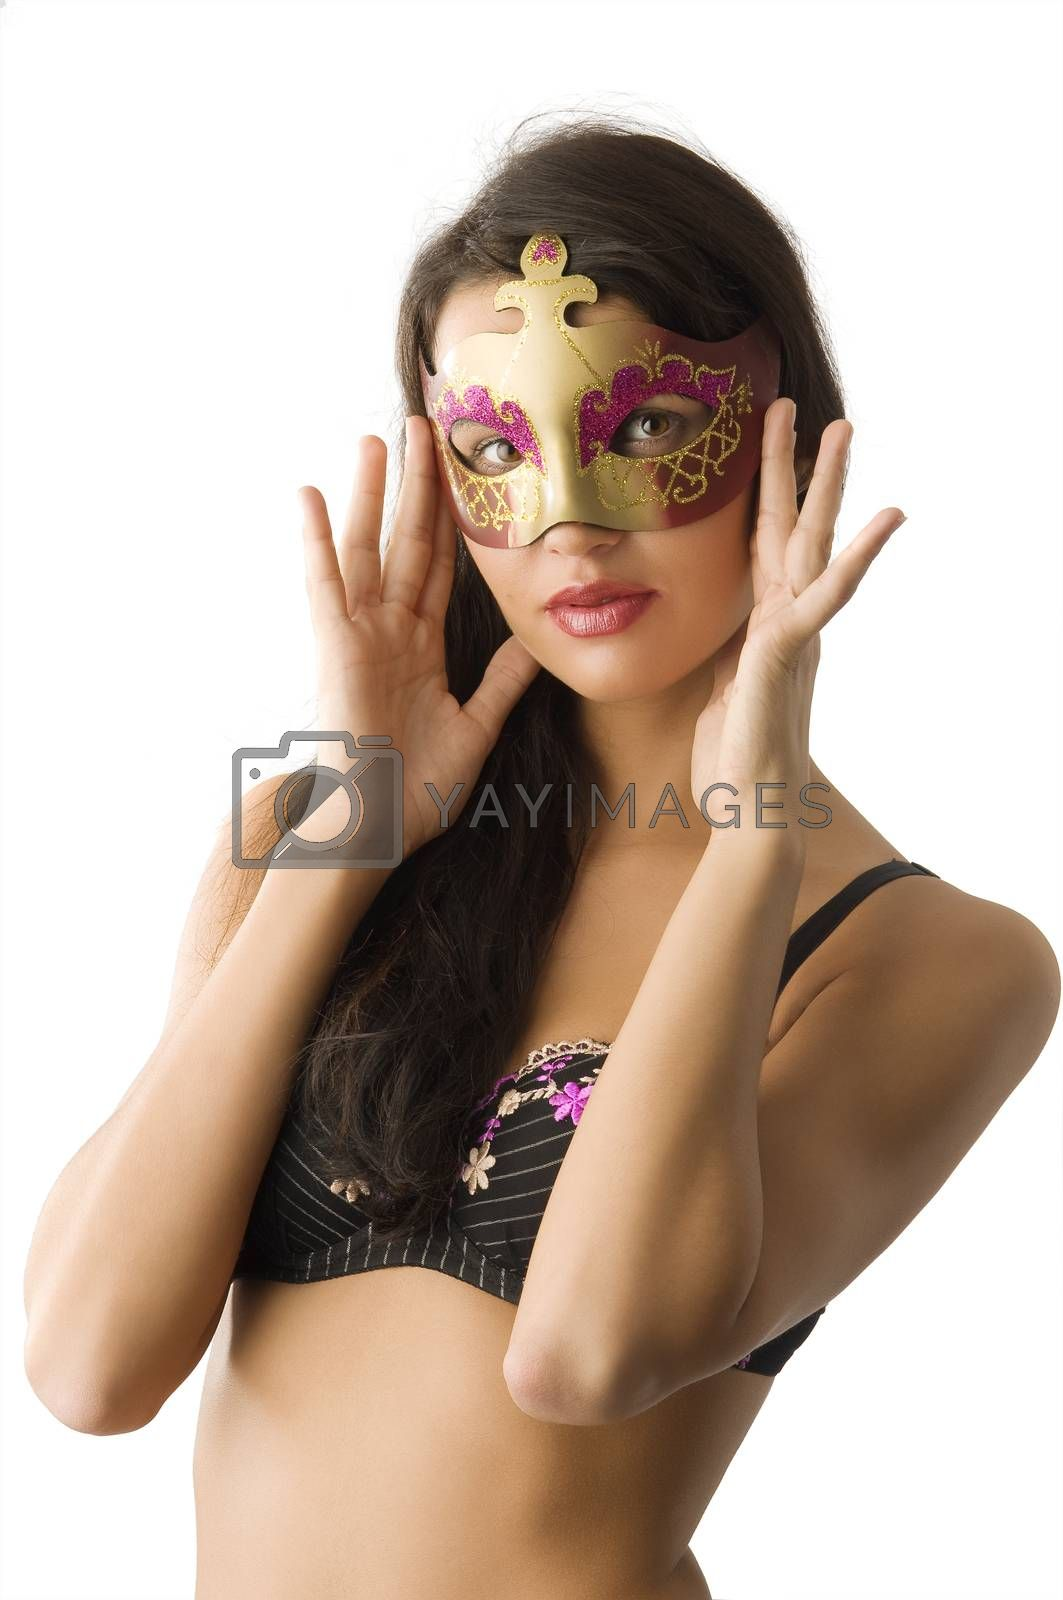 Royalty free image of mask and lingerie by fotoCD